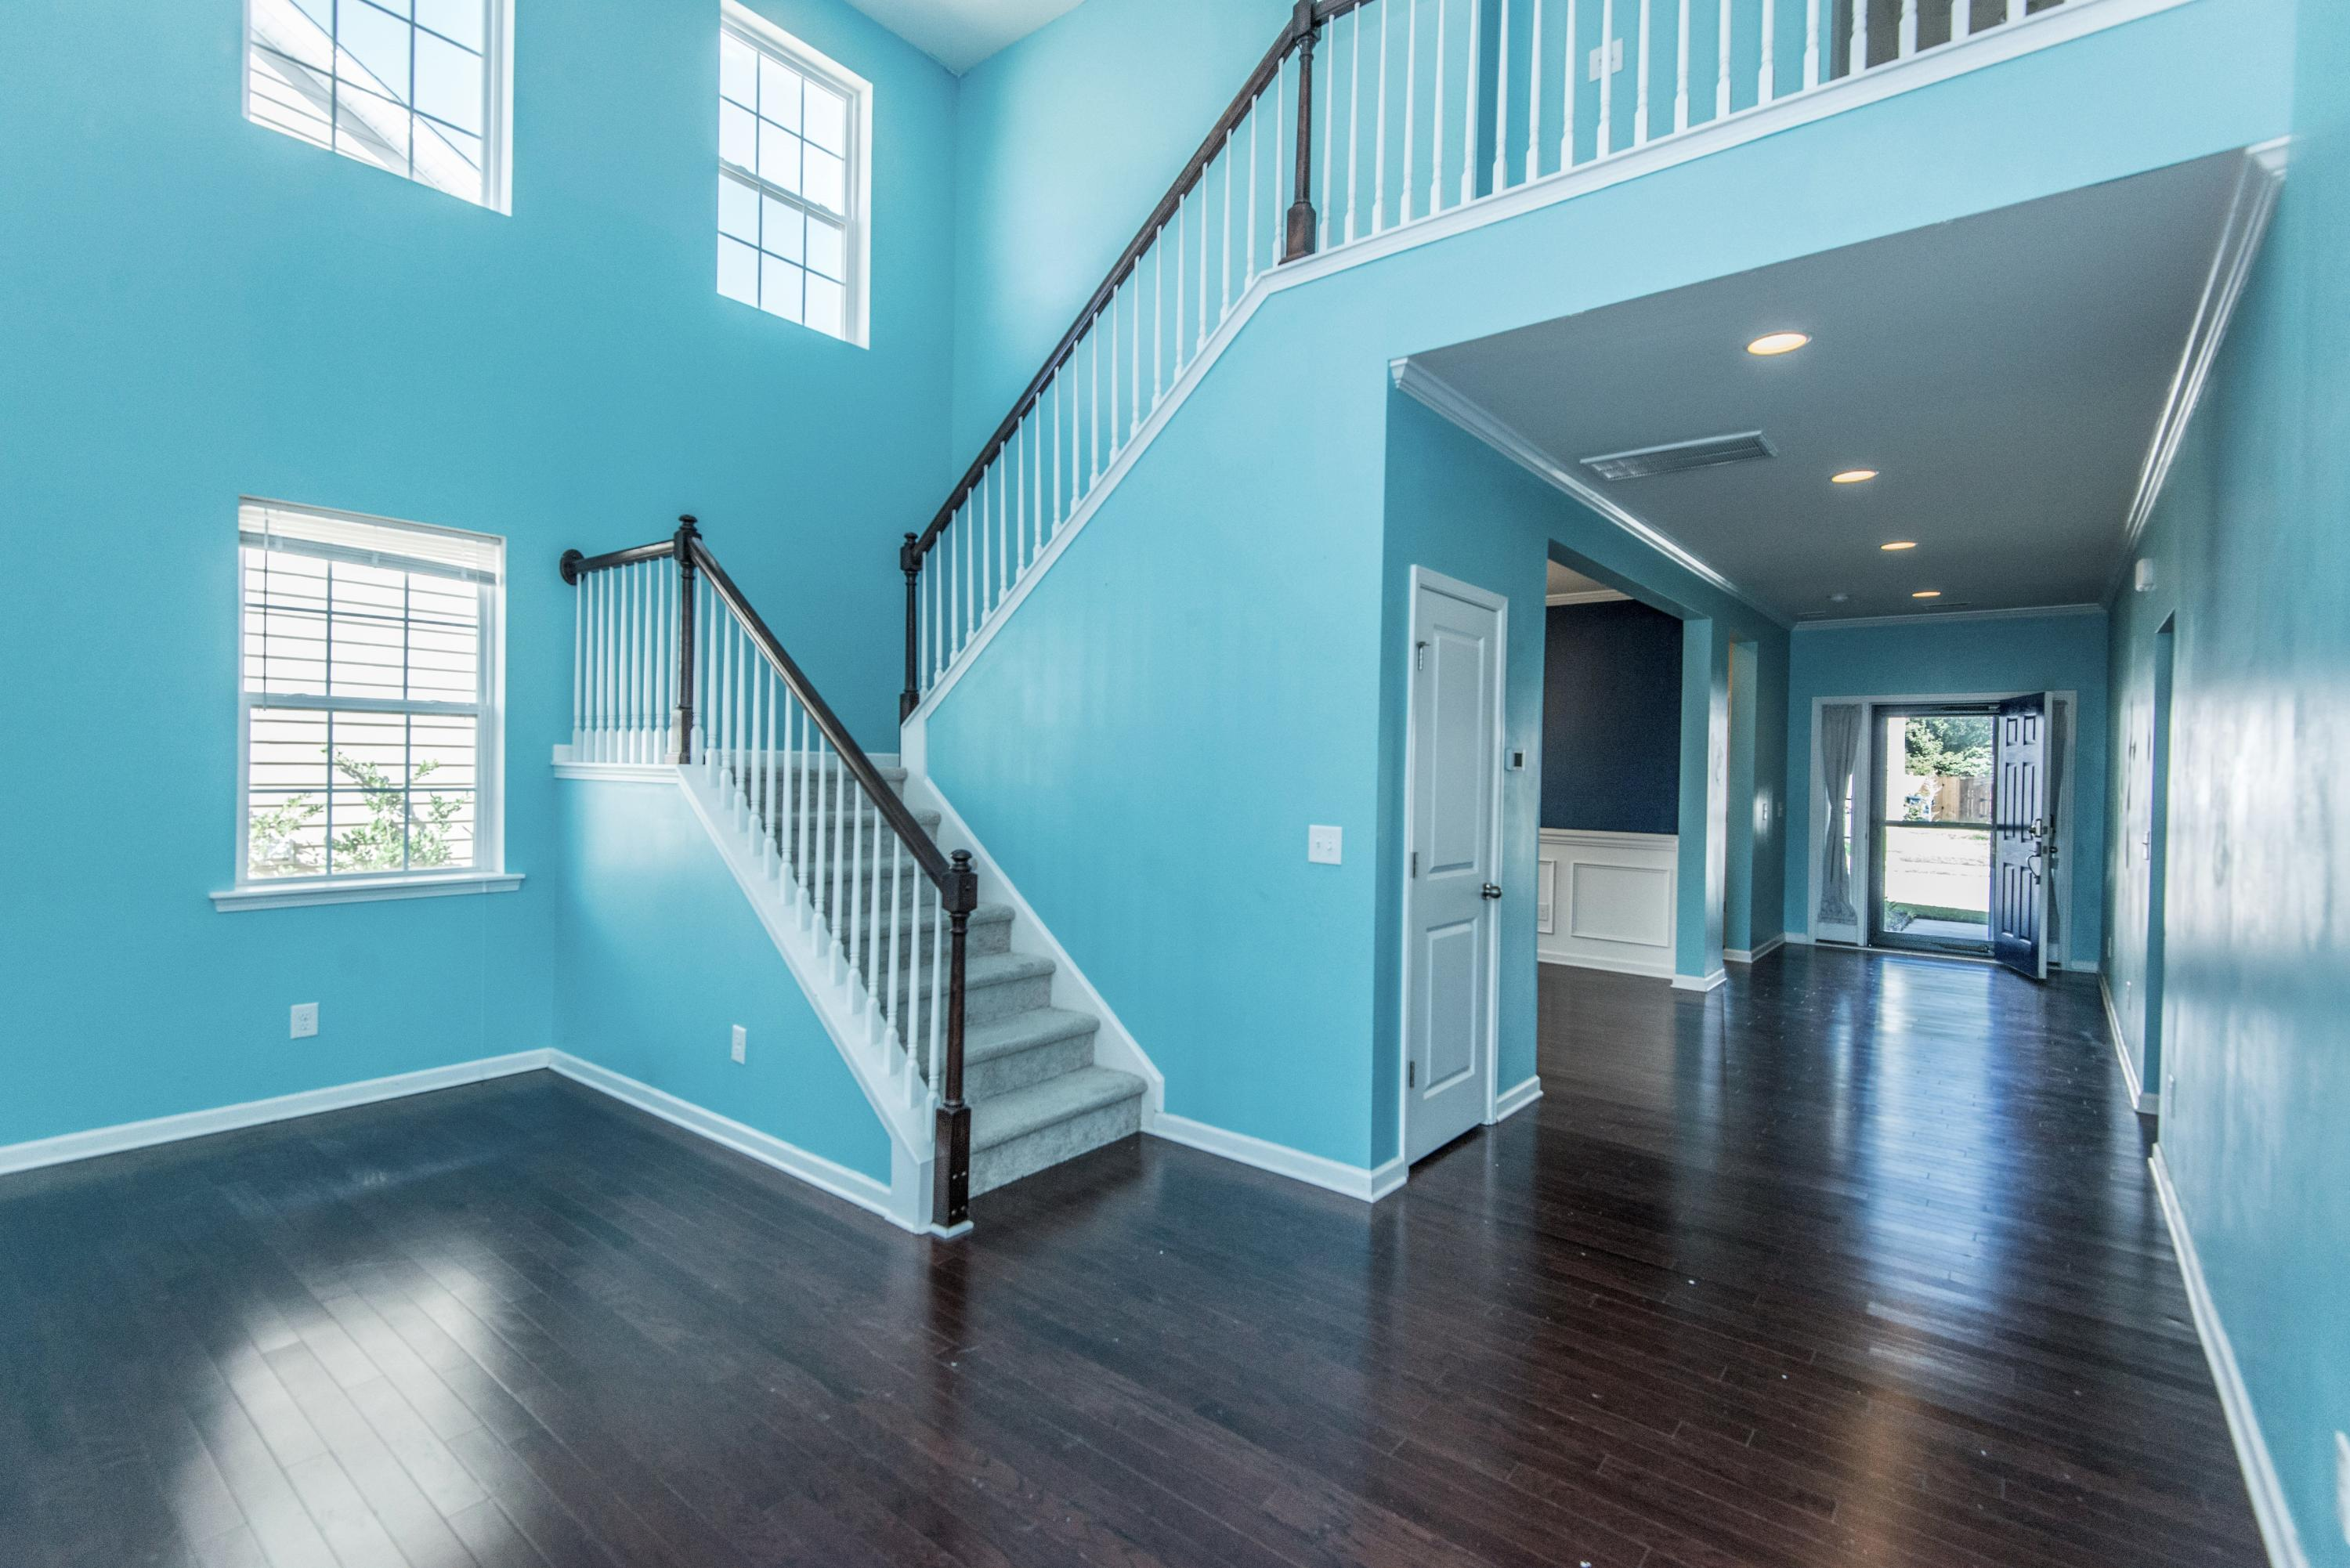 Wentworth Hall Homes For Sale - 216 Wexford, Summerville, SC - 4